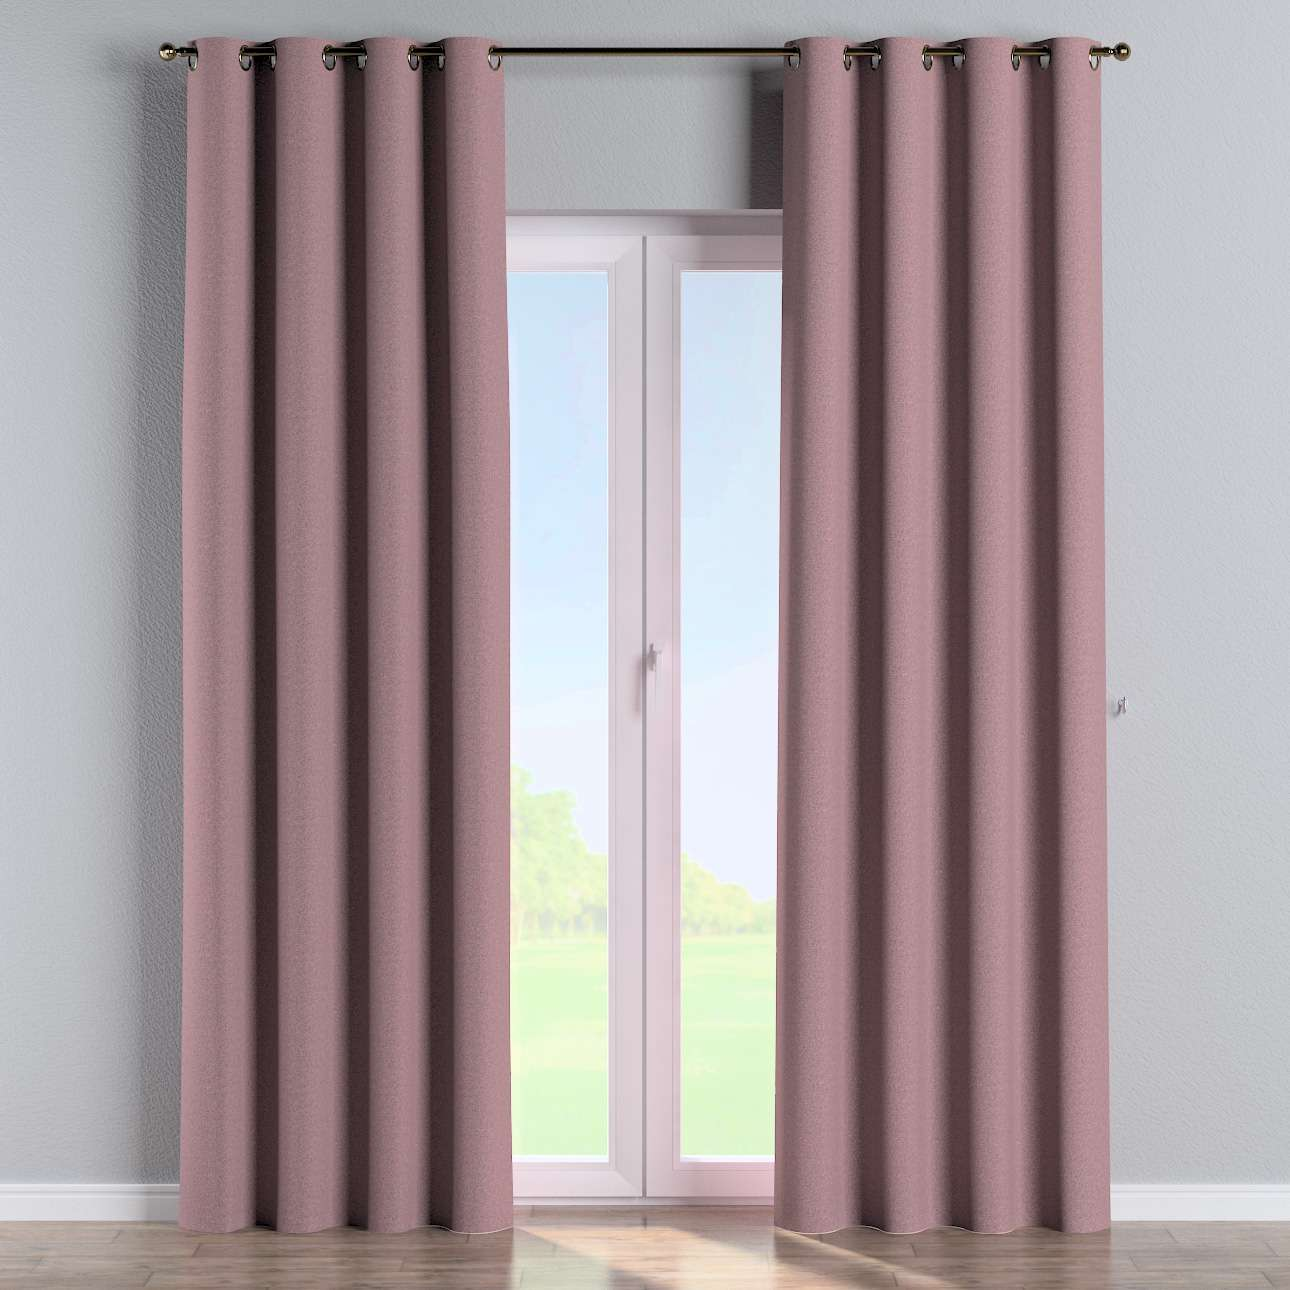 Eyelet curtains in collection Amsterdam, fabric: 704-48